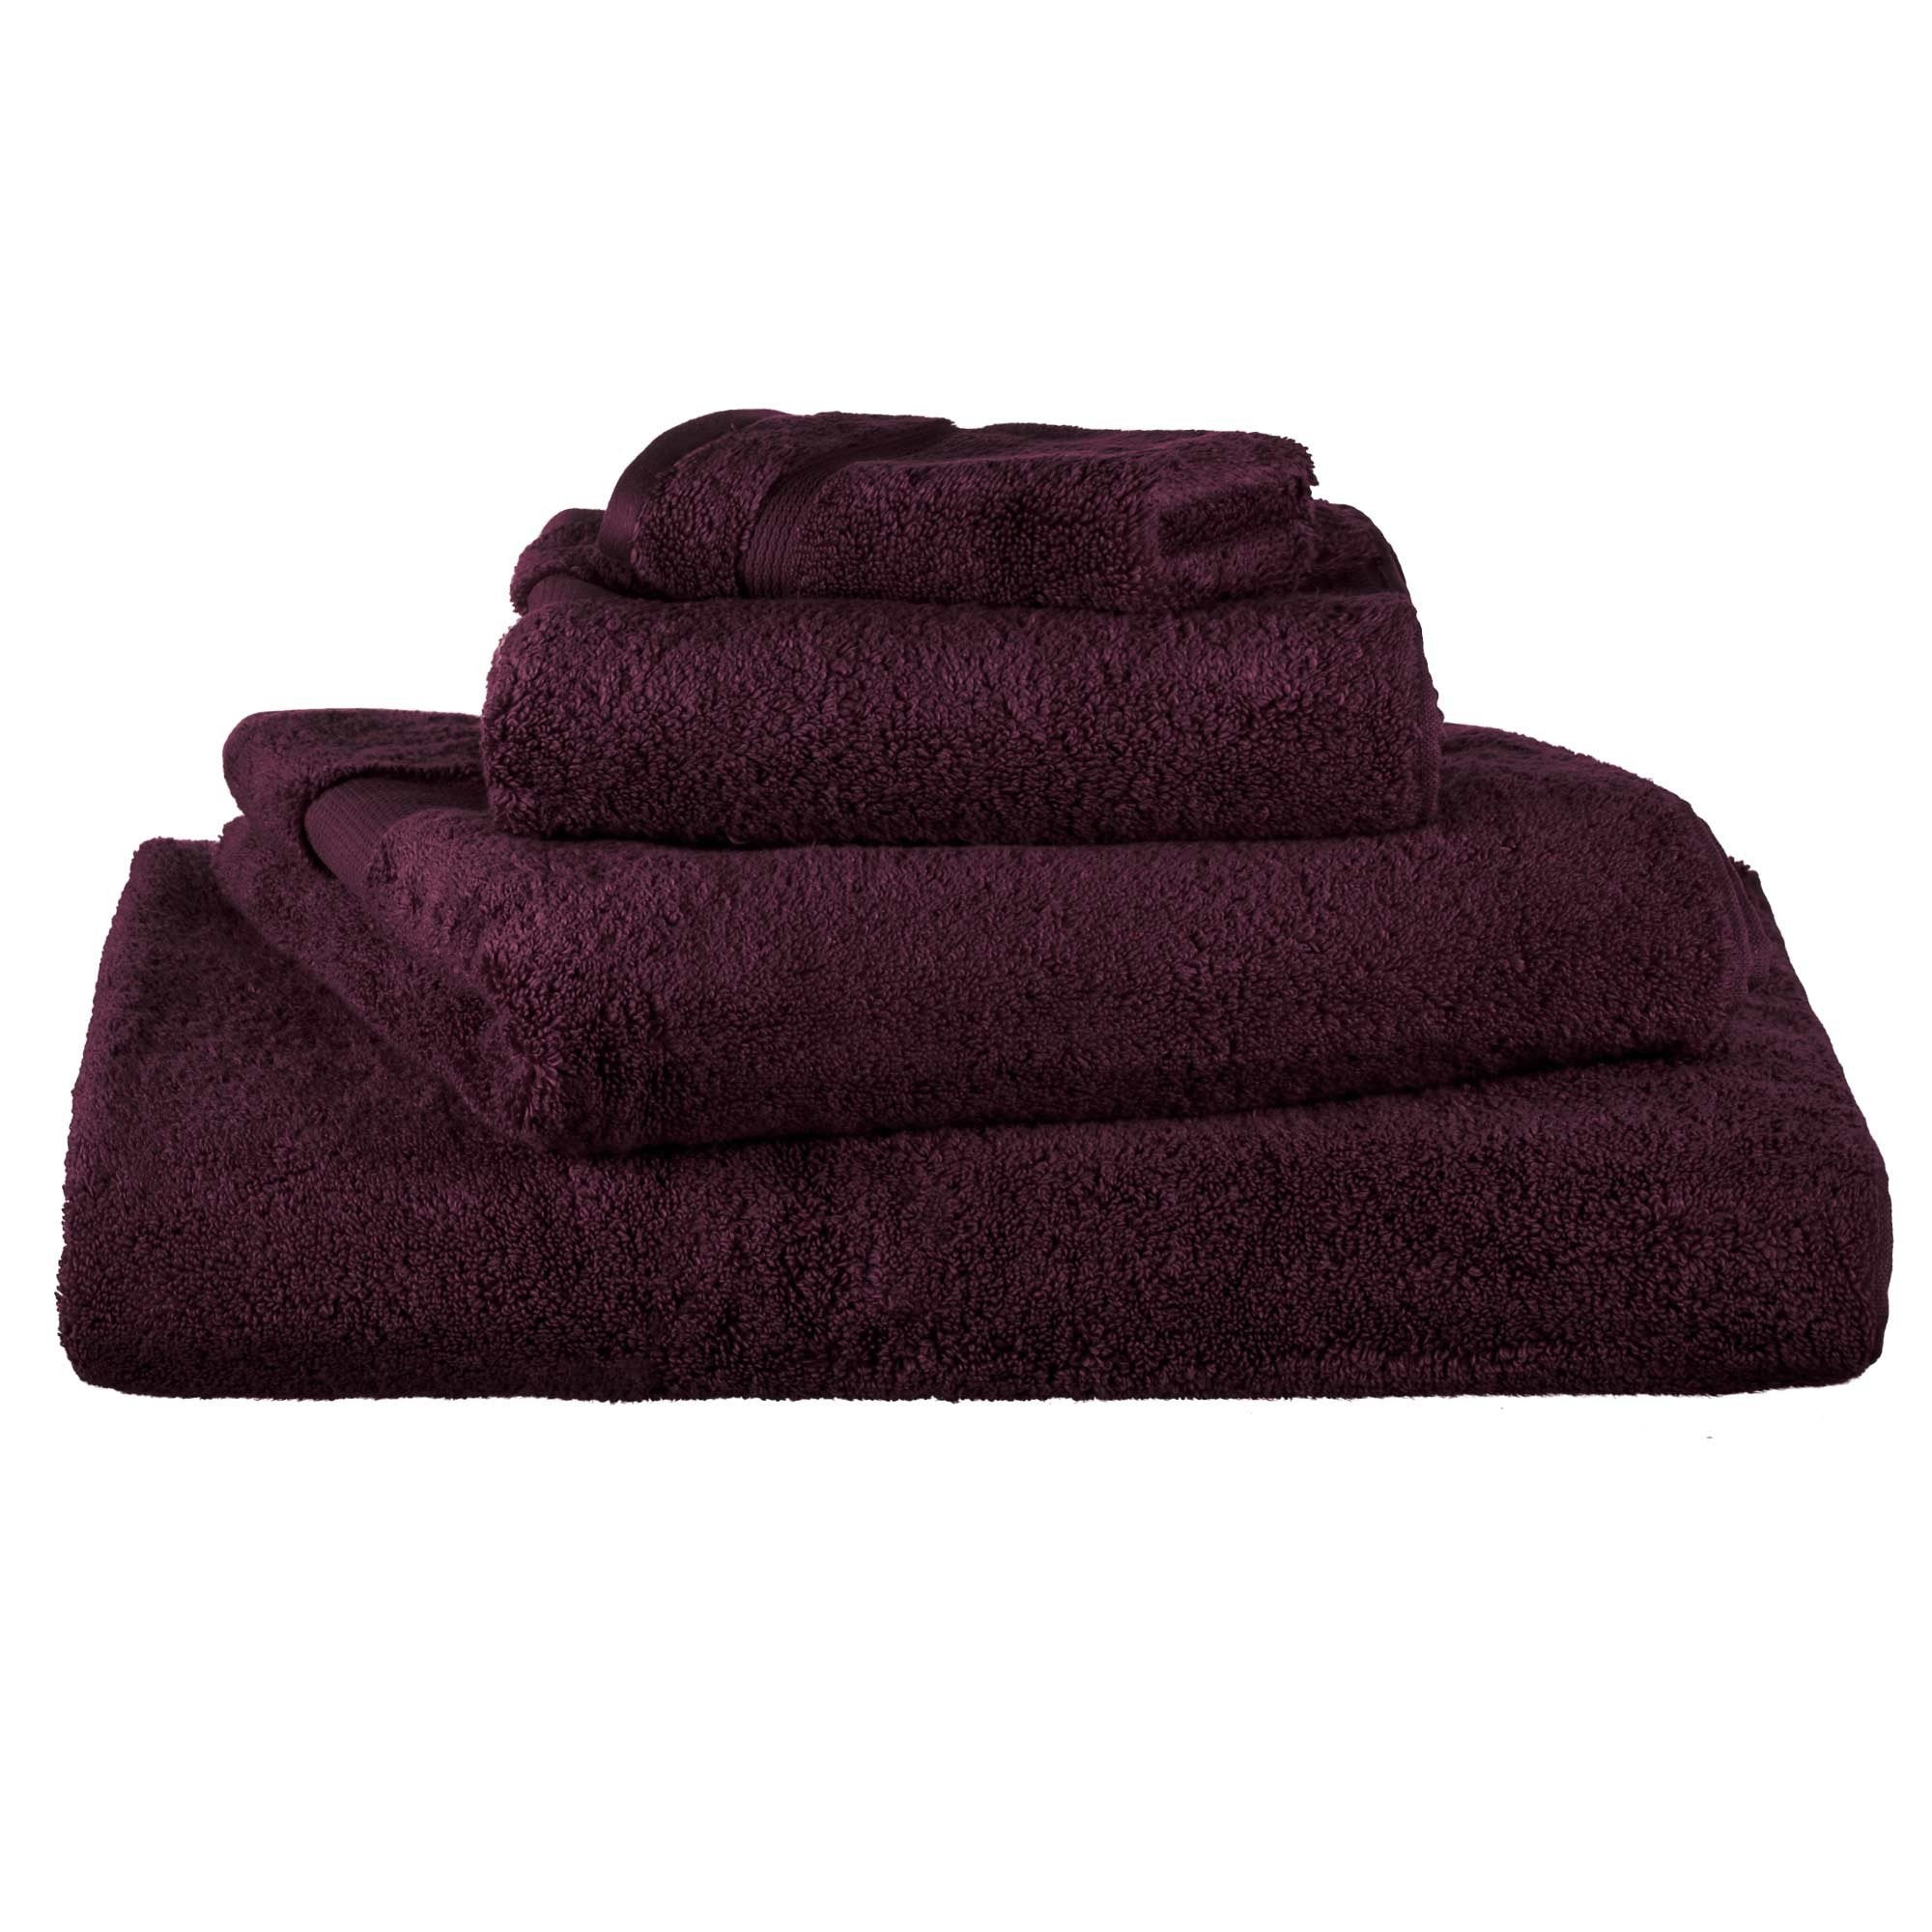 Alvito hand towel, bordeaux red, 100% zero twist cotton